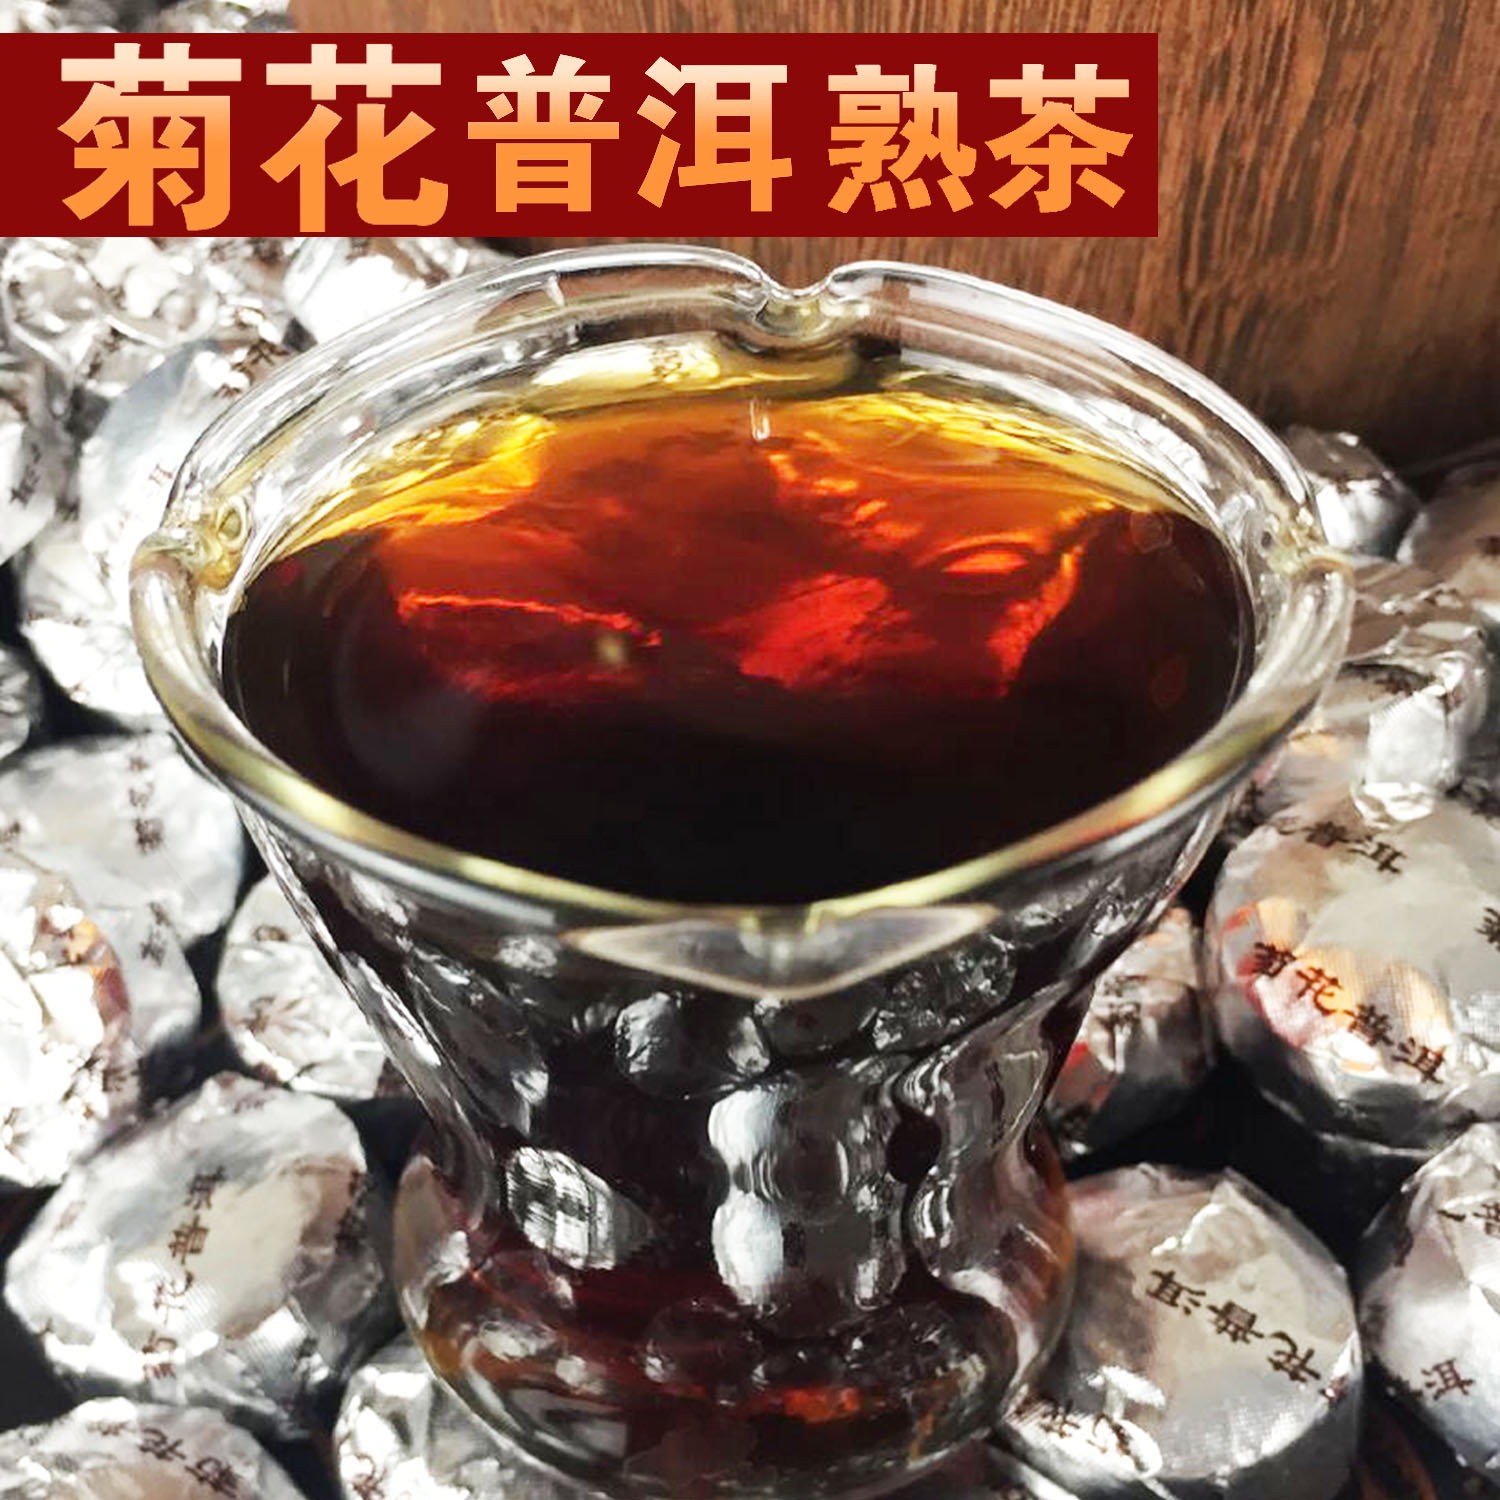 Yunnan Court Chrysanthemum Aged Pu'er Tea Cooked Tea Cake Small Tuo Tea Fragrant Small Tea Tuo Wooden Bucket Gift Box 500g 1